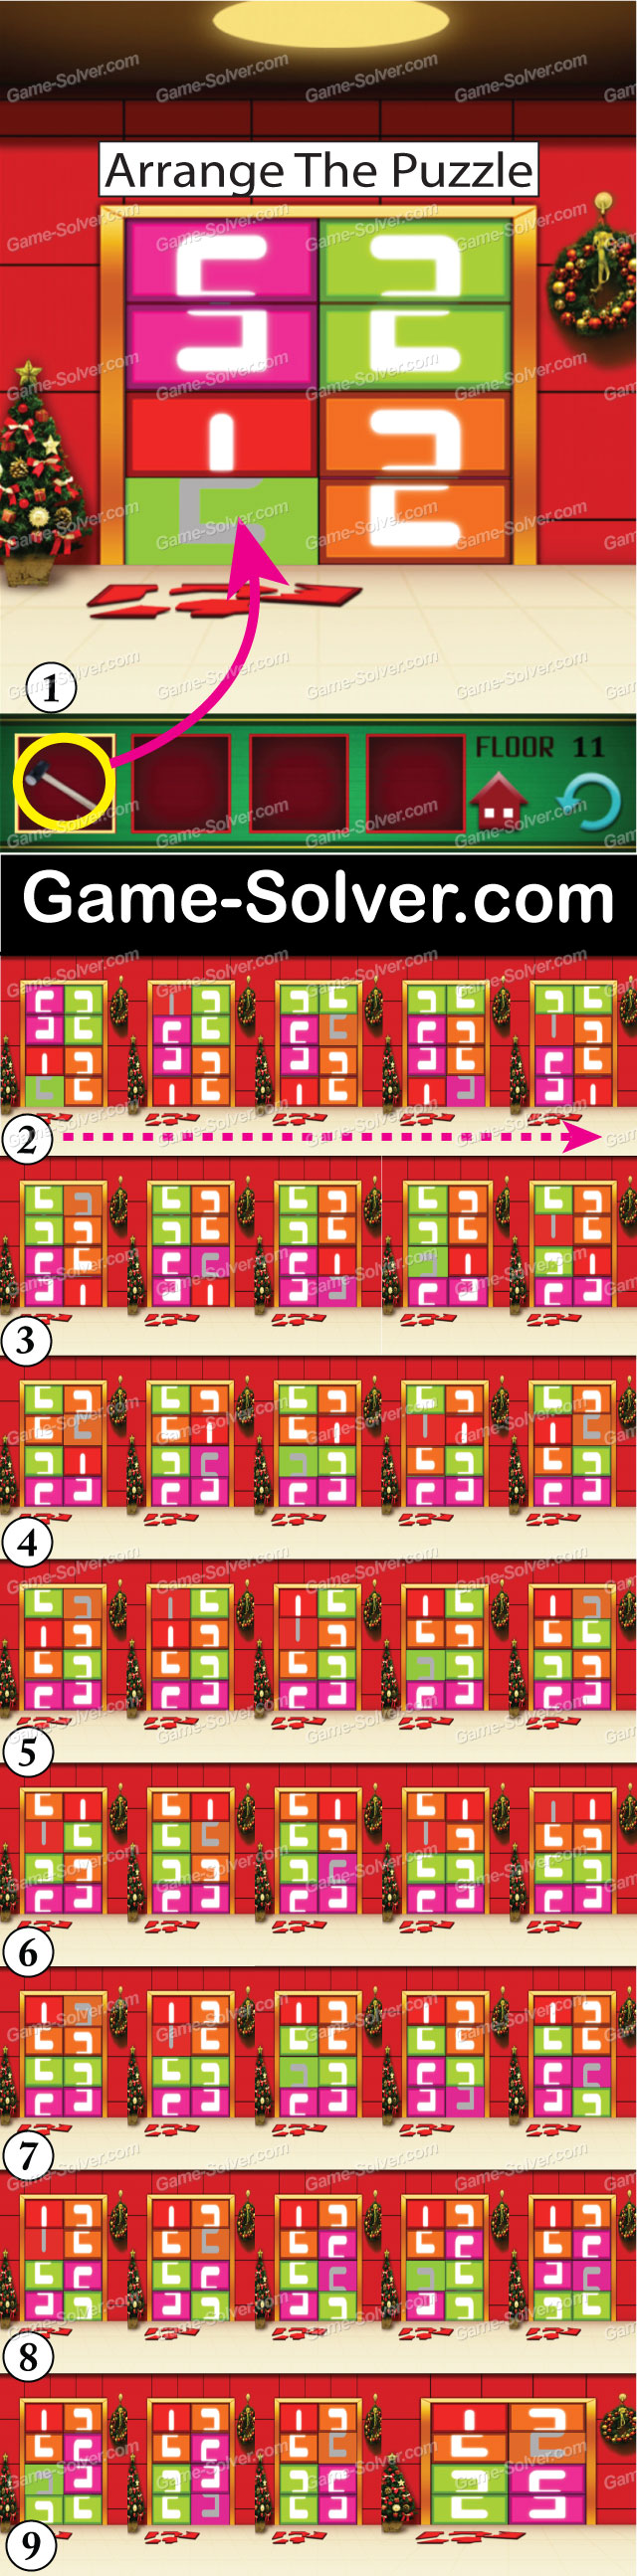 100 Floors Seasons Tower Christmas Level 11 Game Solver